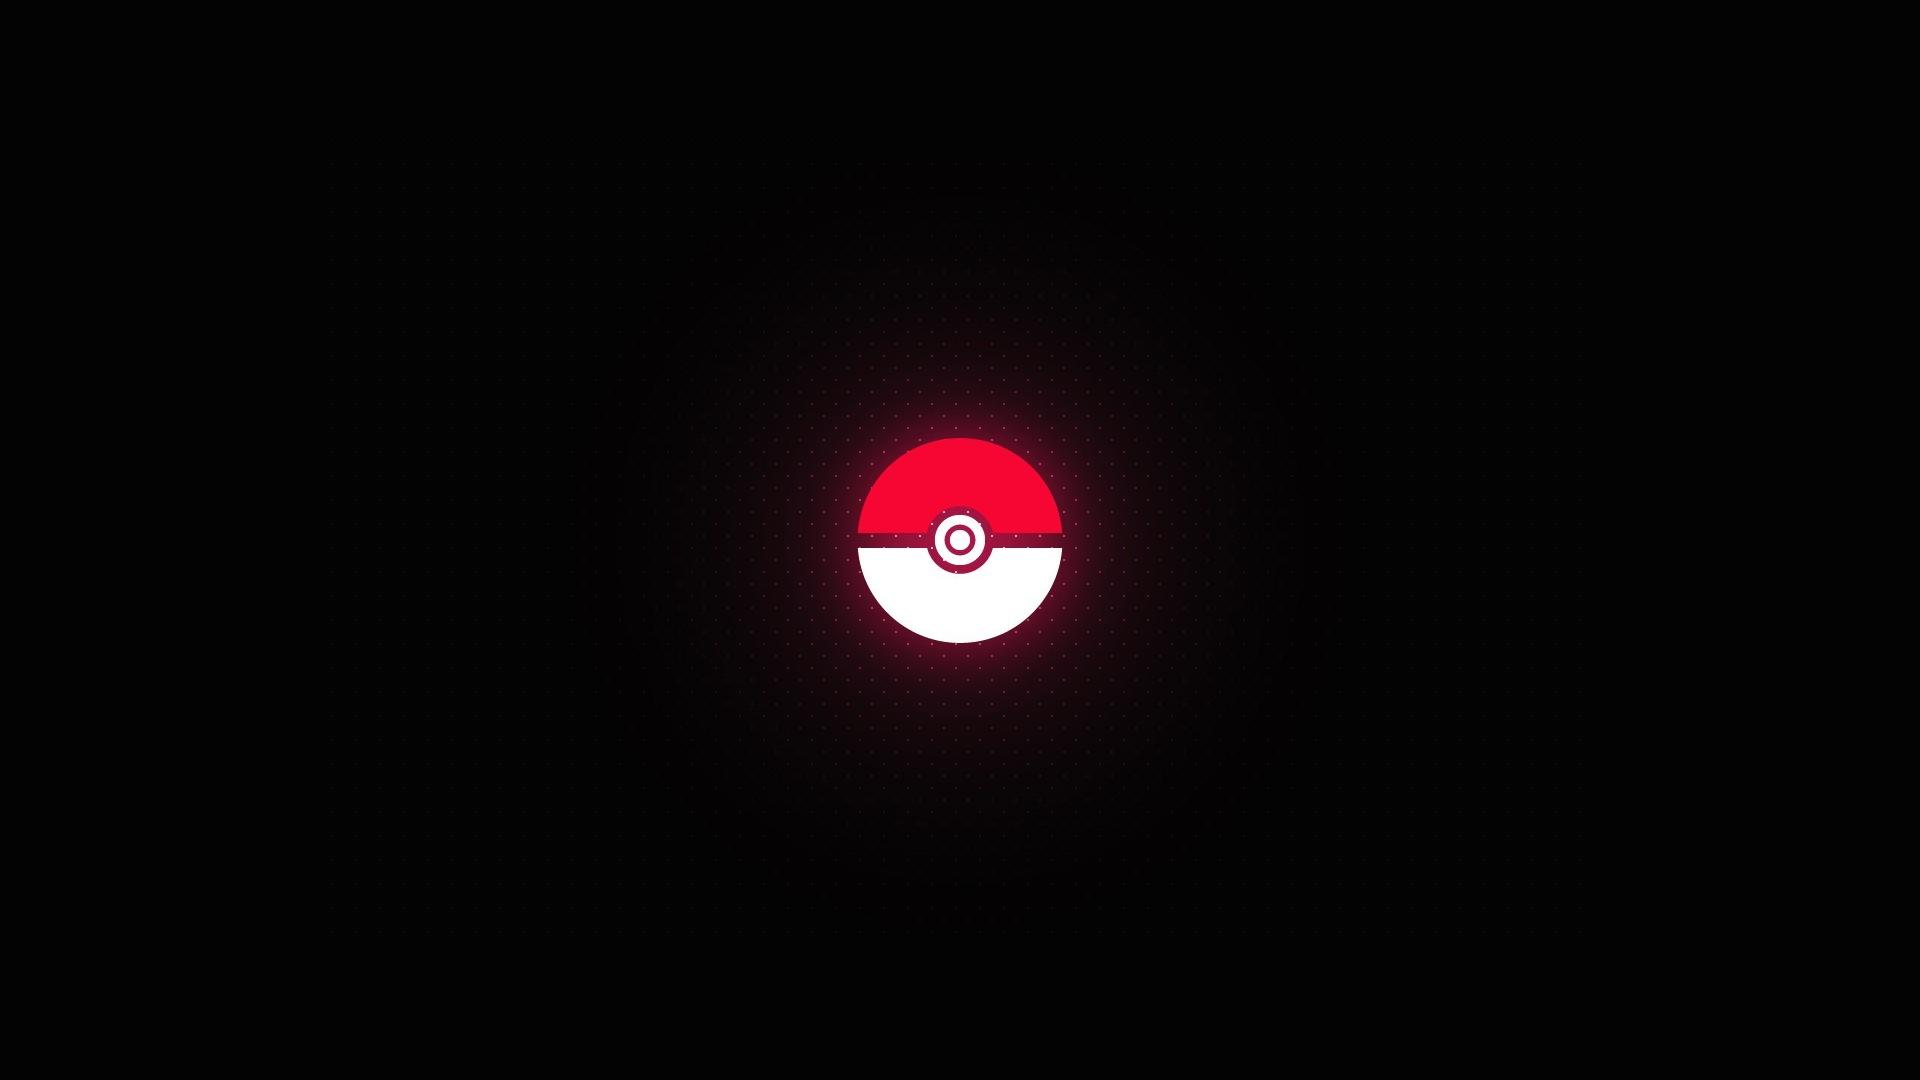 pokeball wallpaper pinterest - photo #4